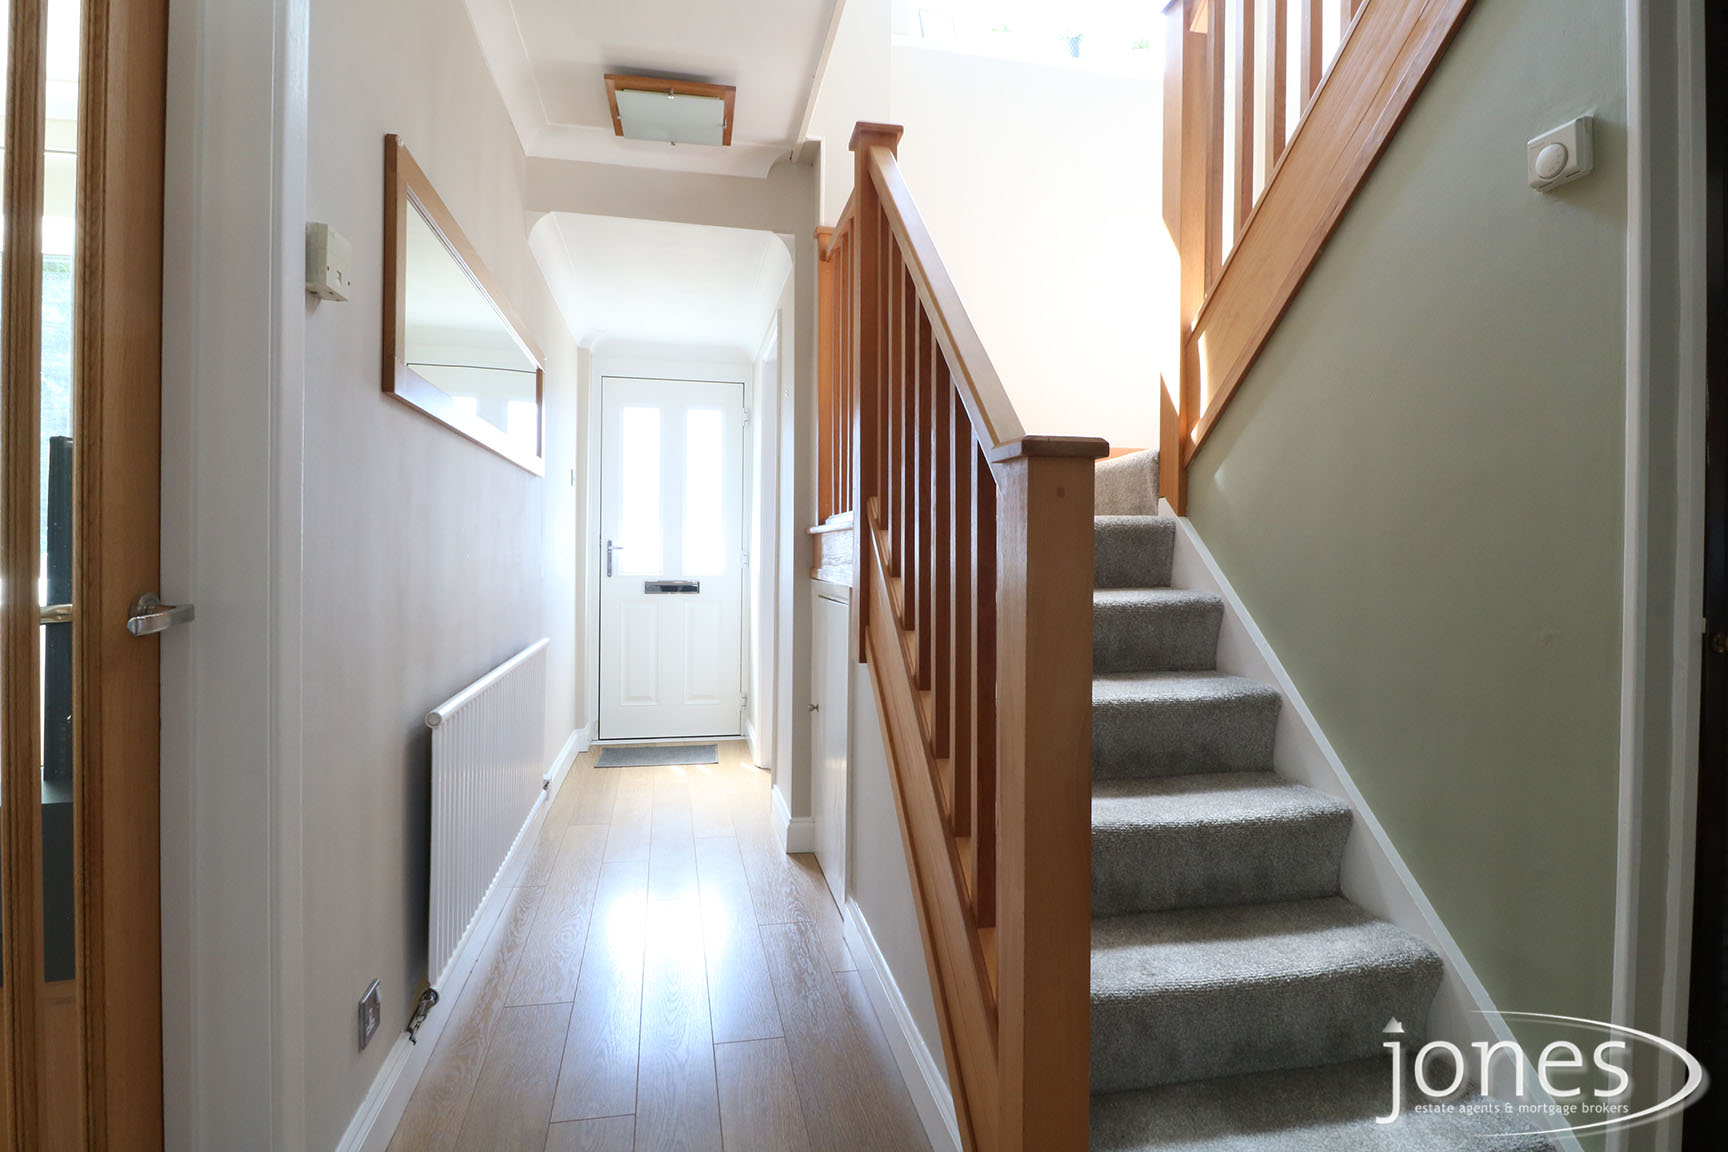 Home for Sale Let - Photo 07 Kielder Drive,Darlington,DL1 2BD